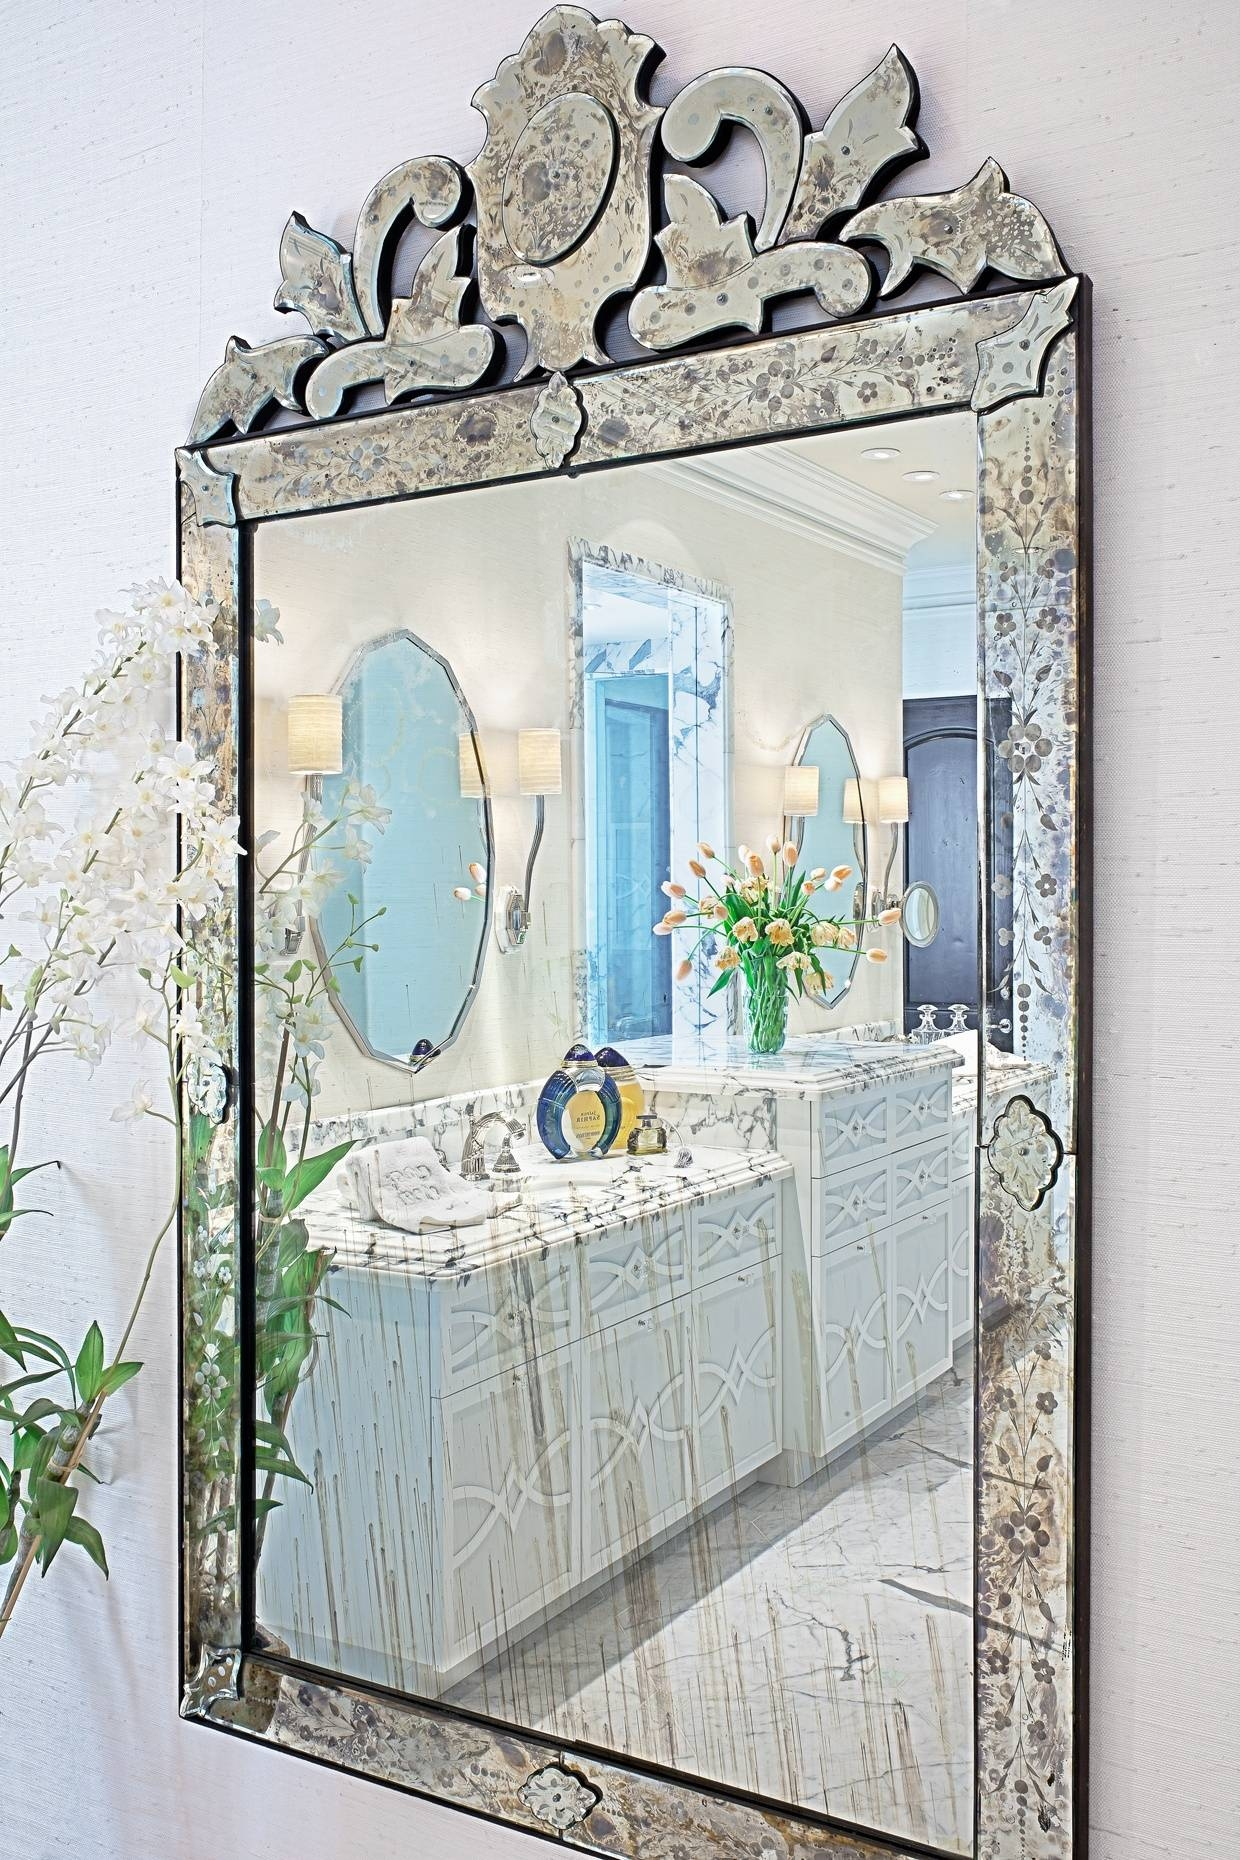 Interior: Antique Venetian Mirrors Oval Venetian Mirror Venetian within Venetian Wall Mirrors (Image 11 of 25)